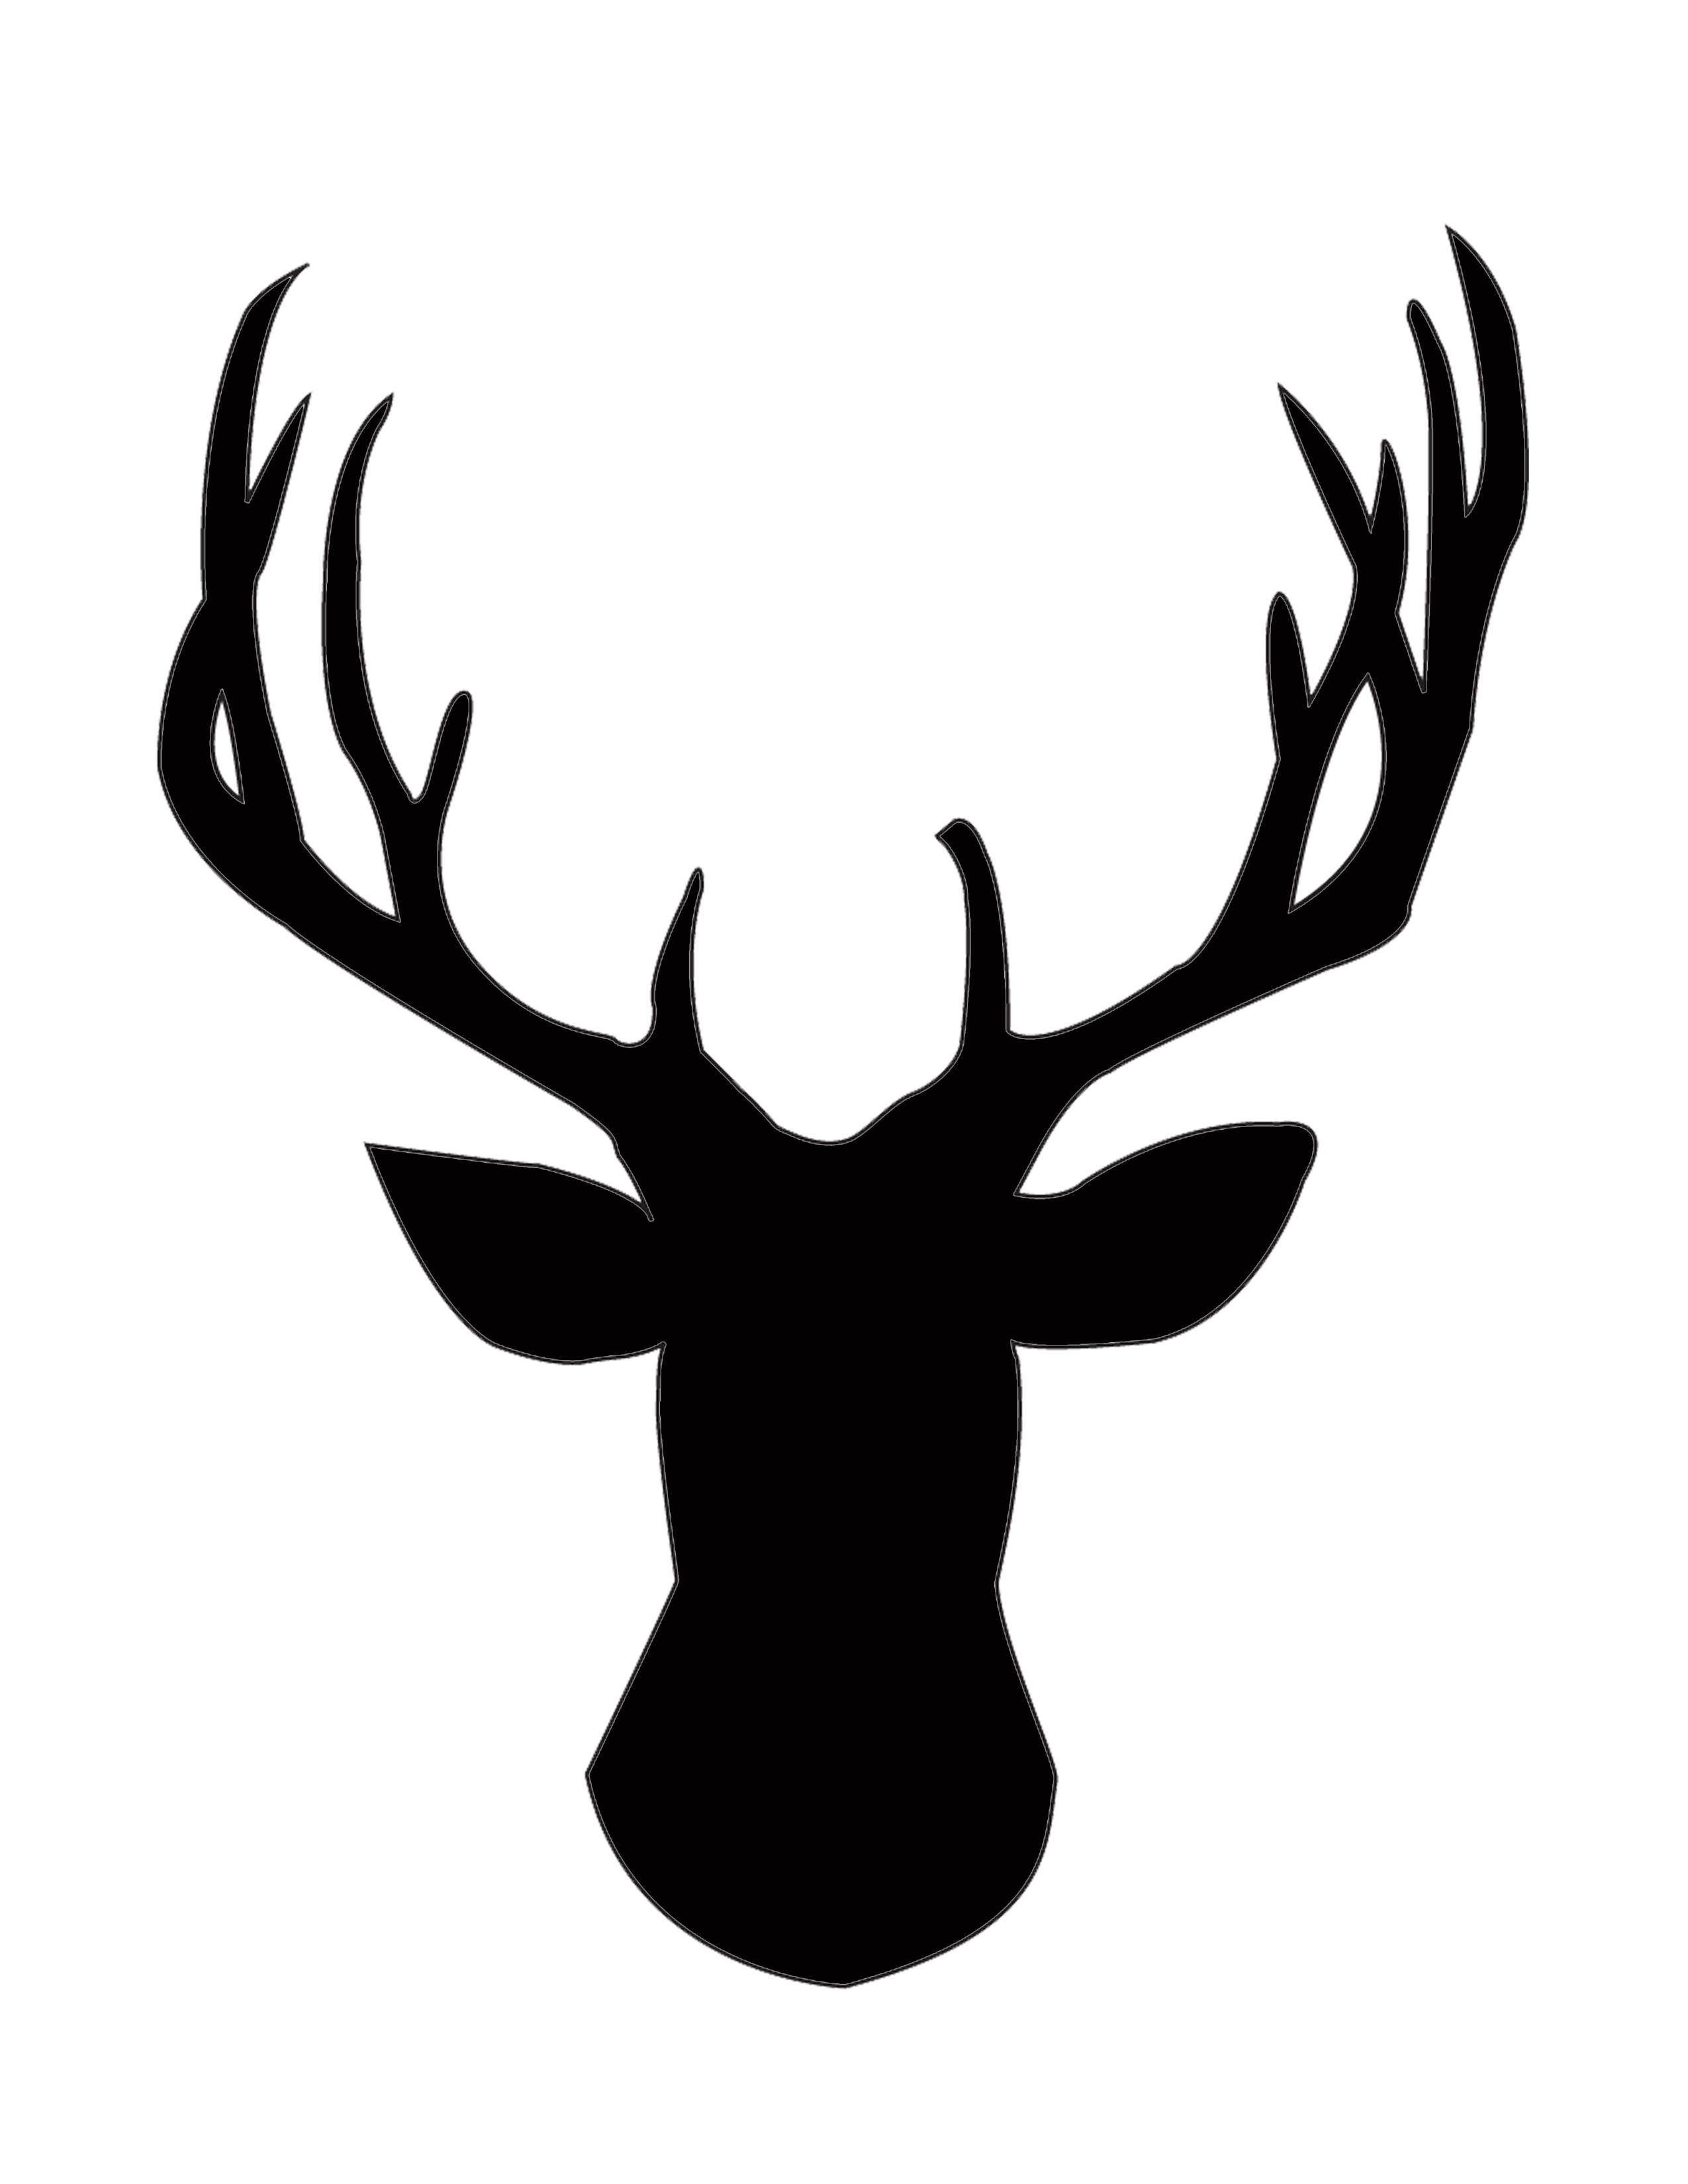 White stag clipart jpg freeuse download Deer Head Black And White | Free download best Deer Head ... jpg freeuse download